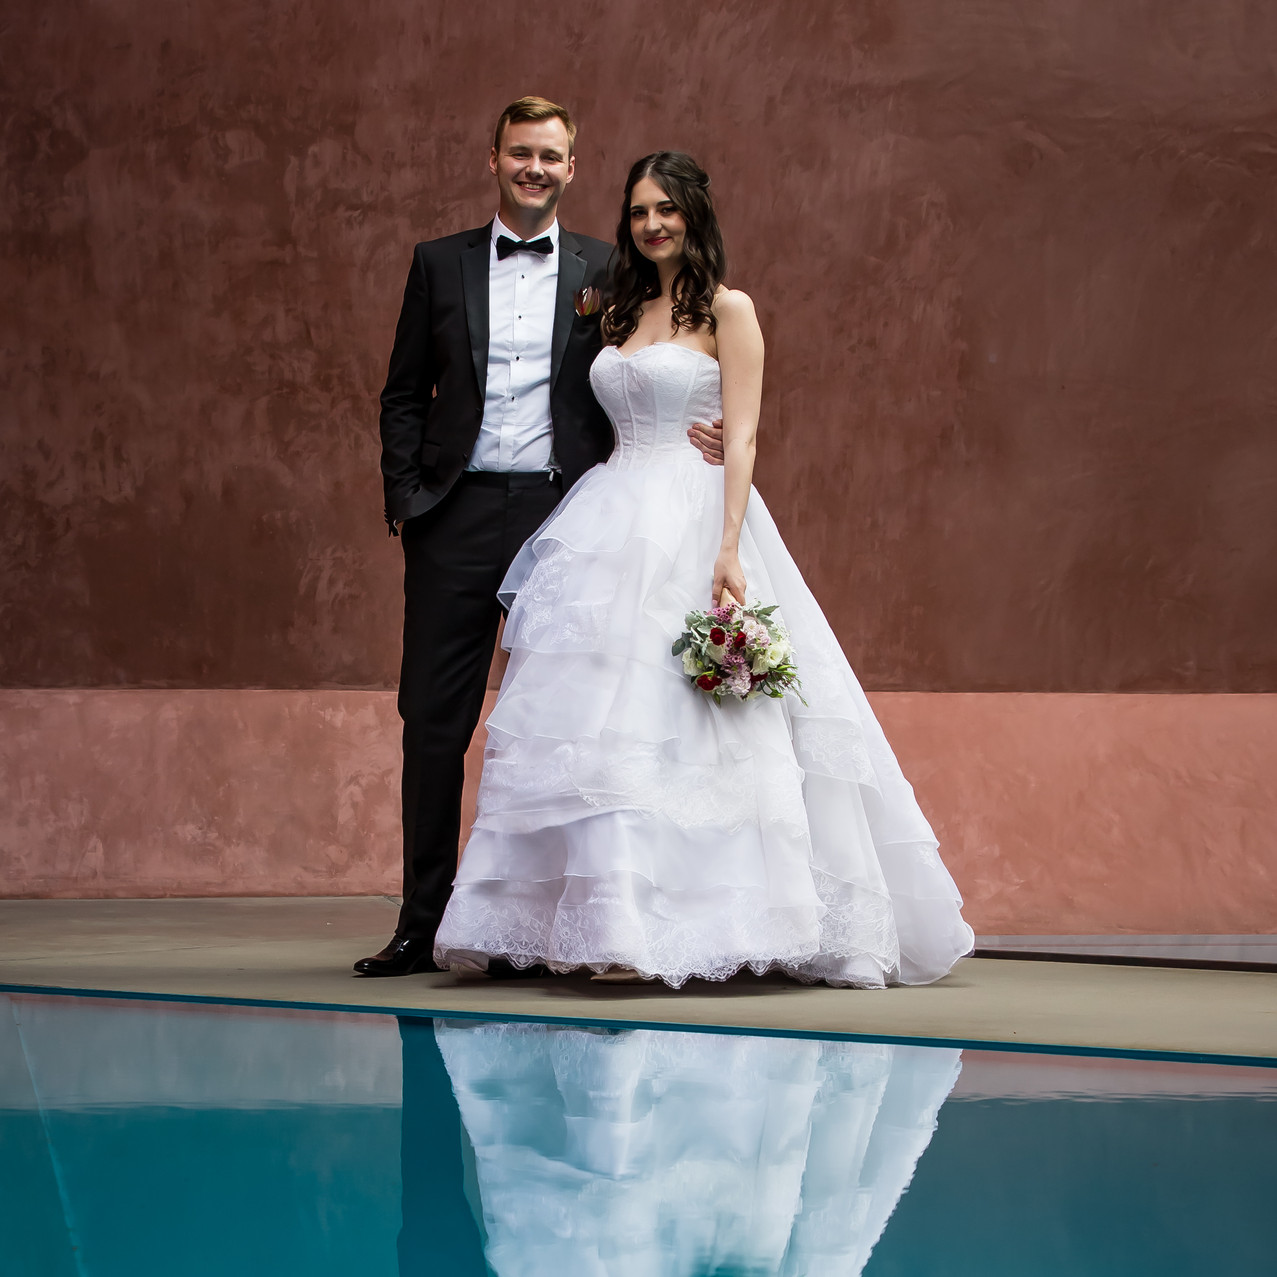 Wedding photography by the pool